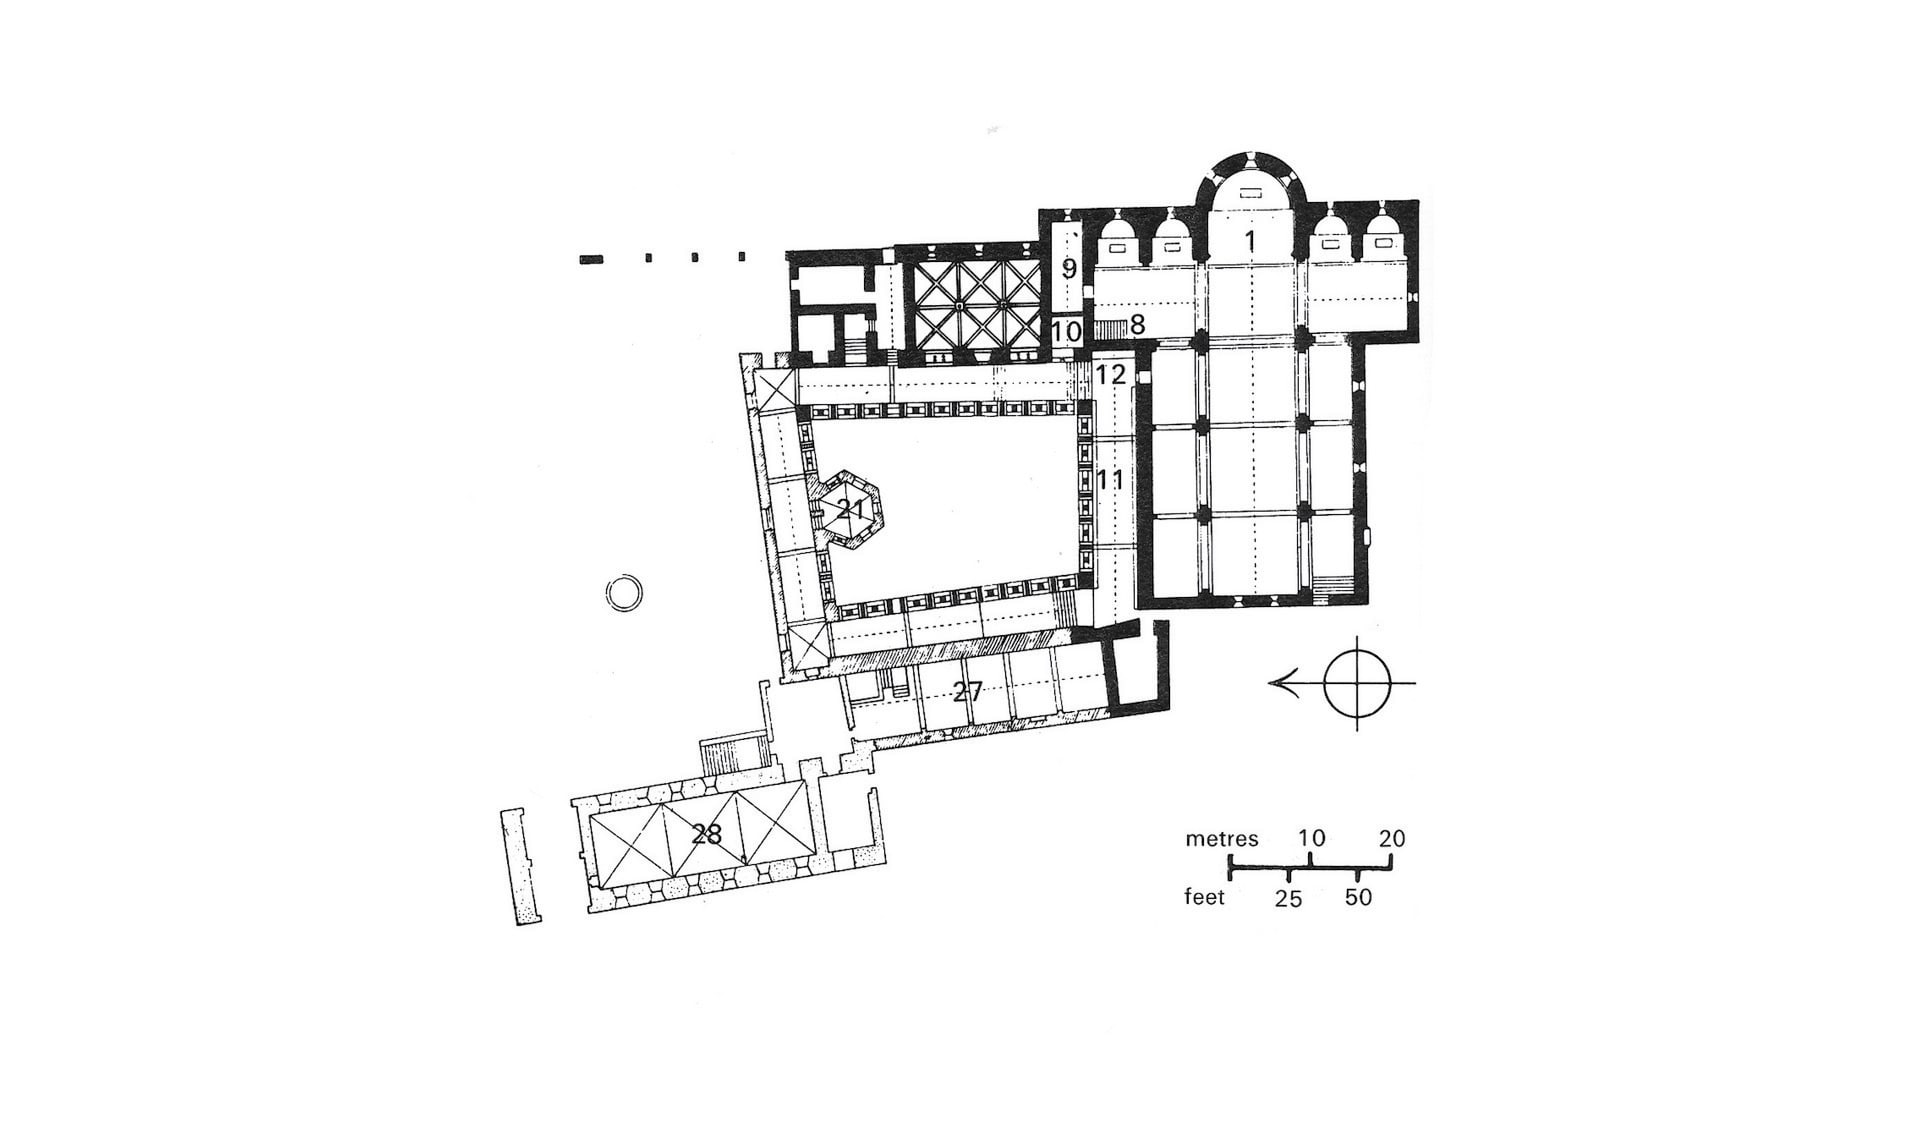 Thoronet Abbey plan - source: https://www.plans-reliefs.monuments-nationaux.fr